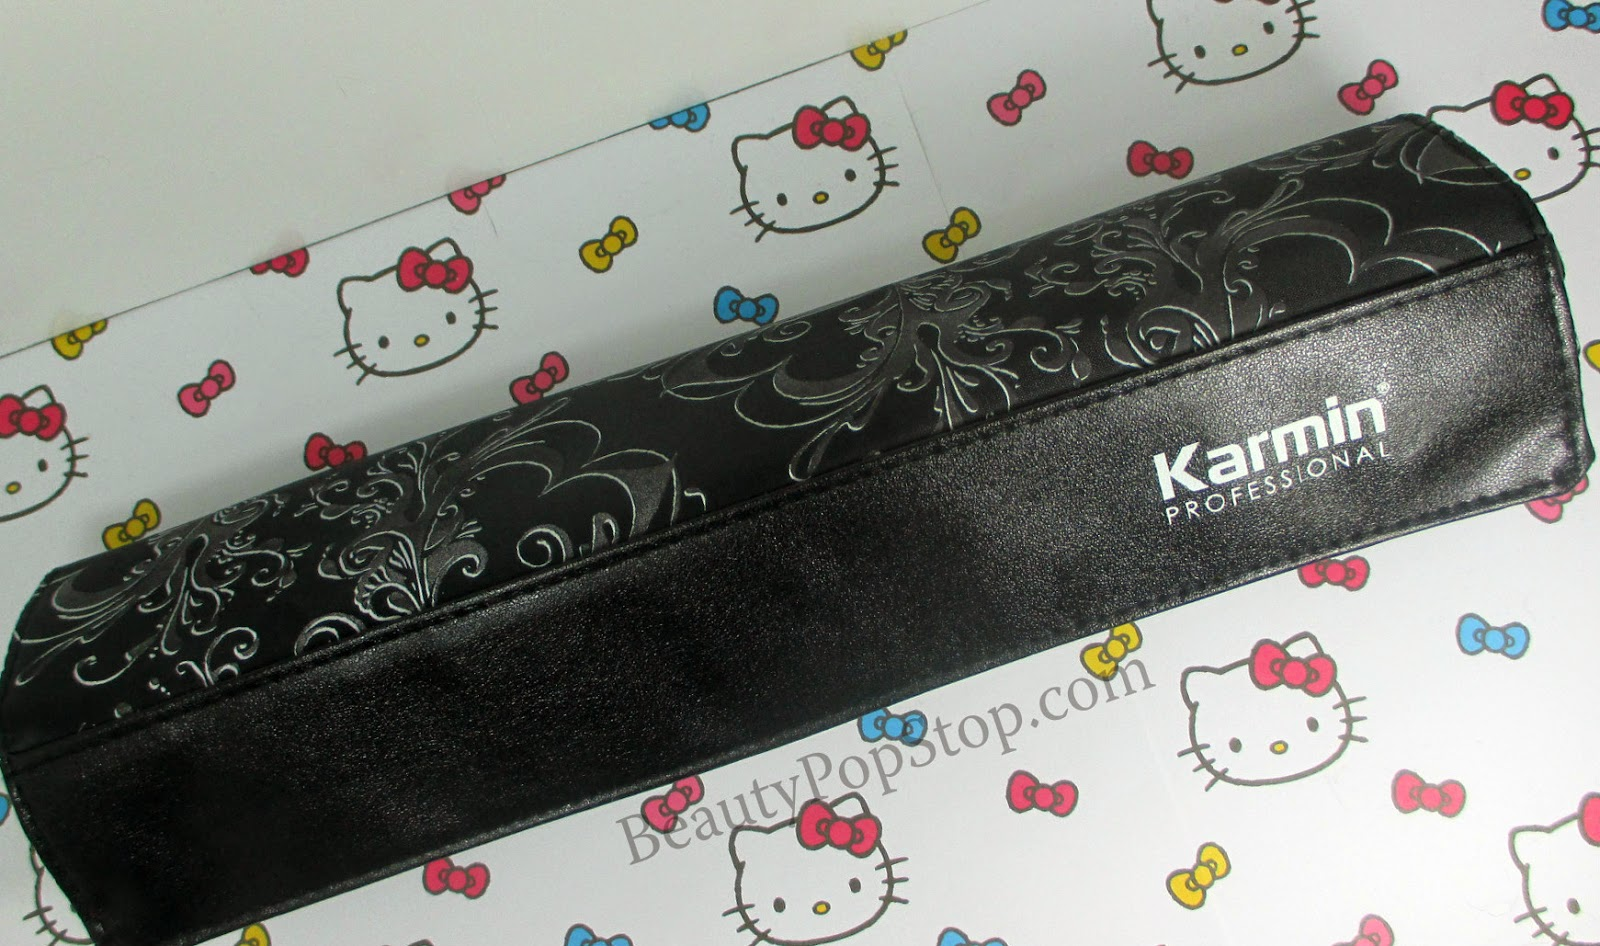 karmin g3 salon pro professional styling iron review